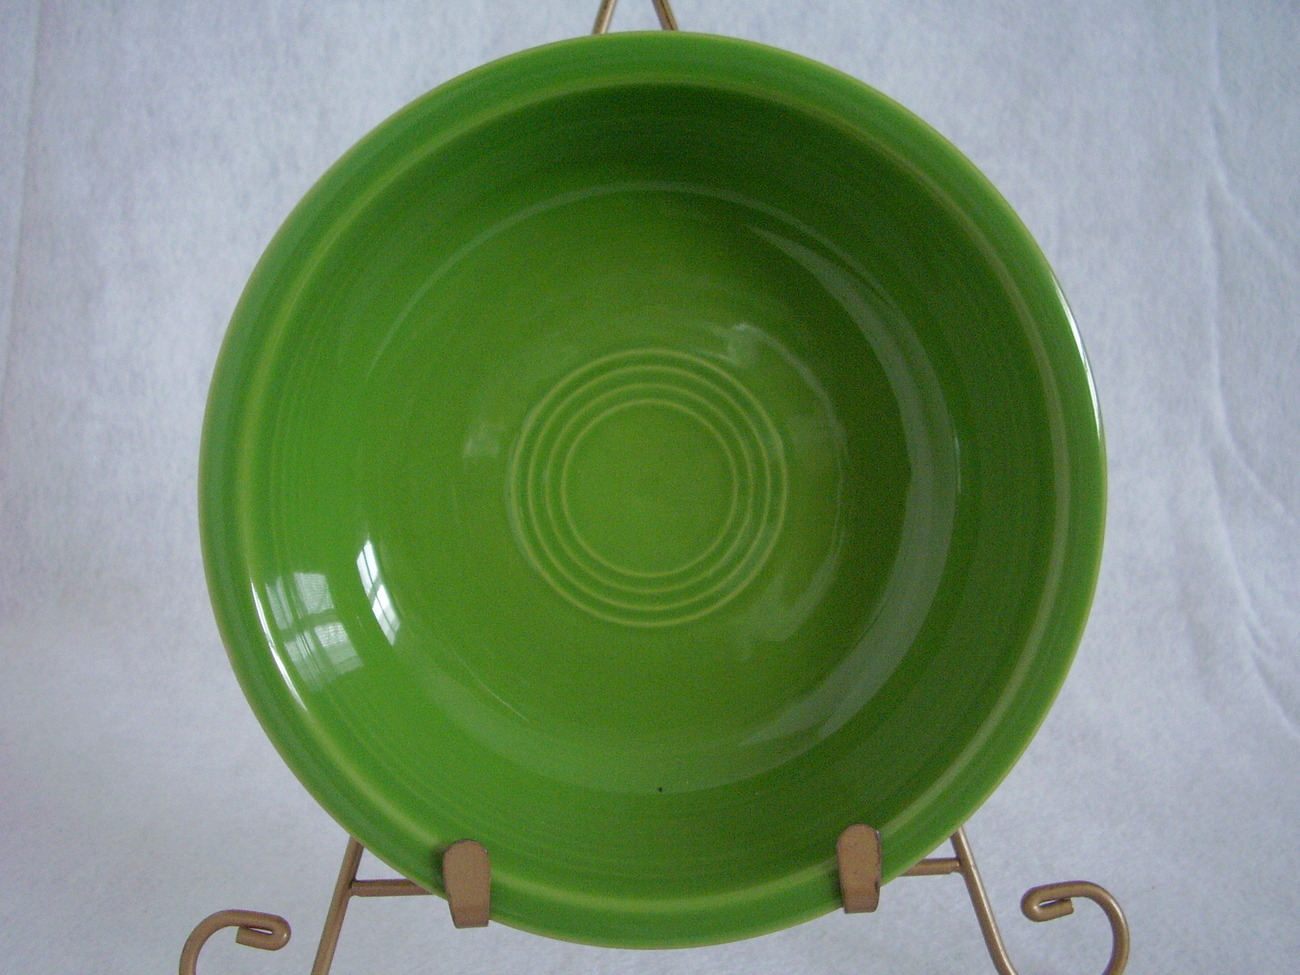 Fiesta Shamrock Stacking Soup Cereal Bowl Fiestaware Contemporary